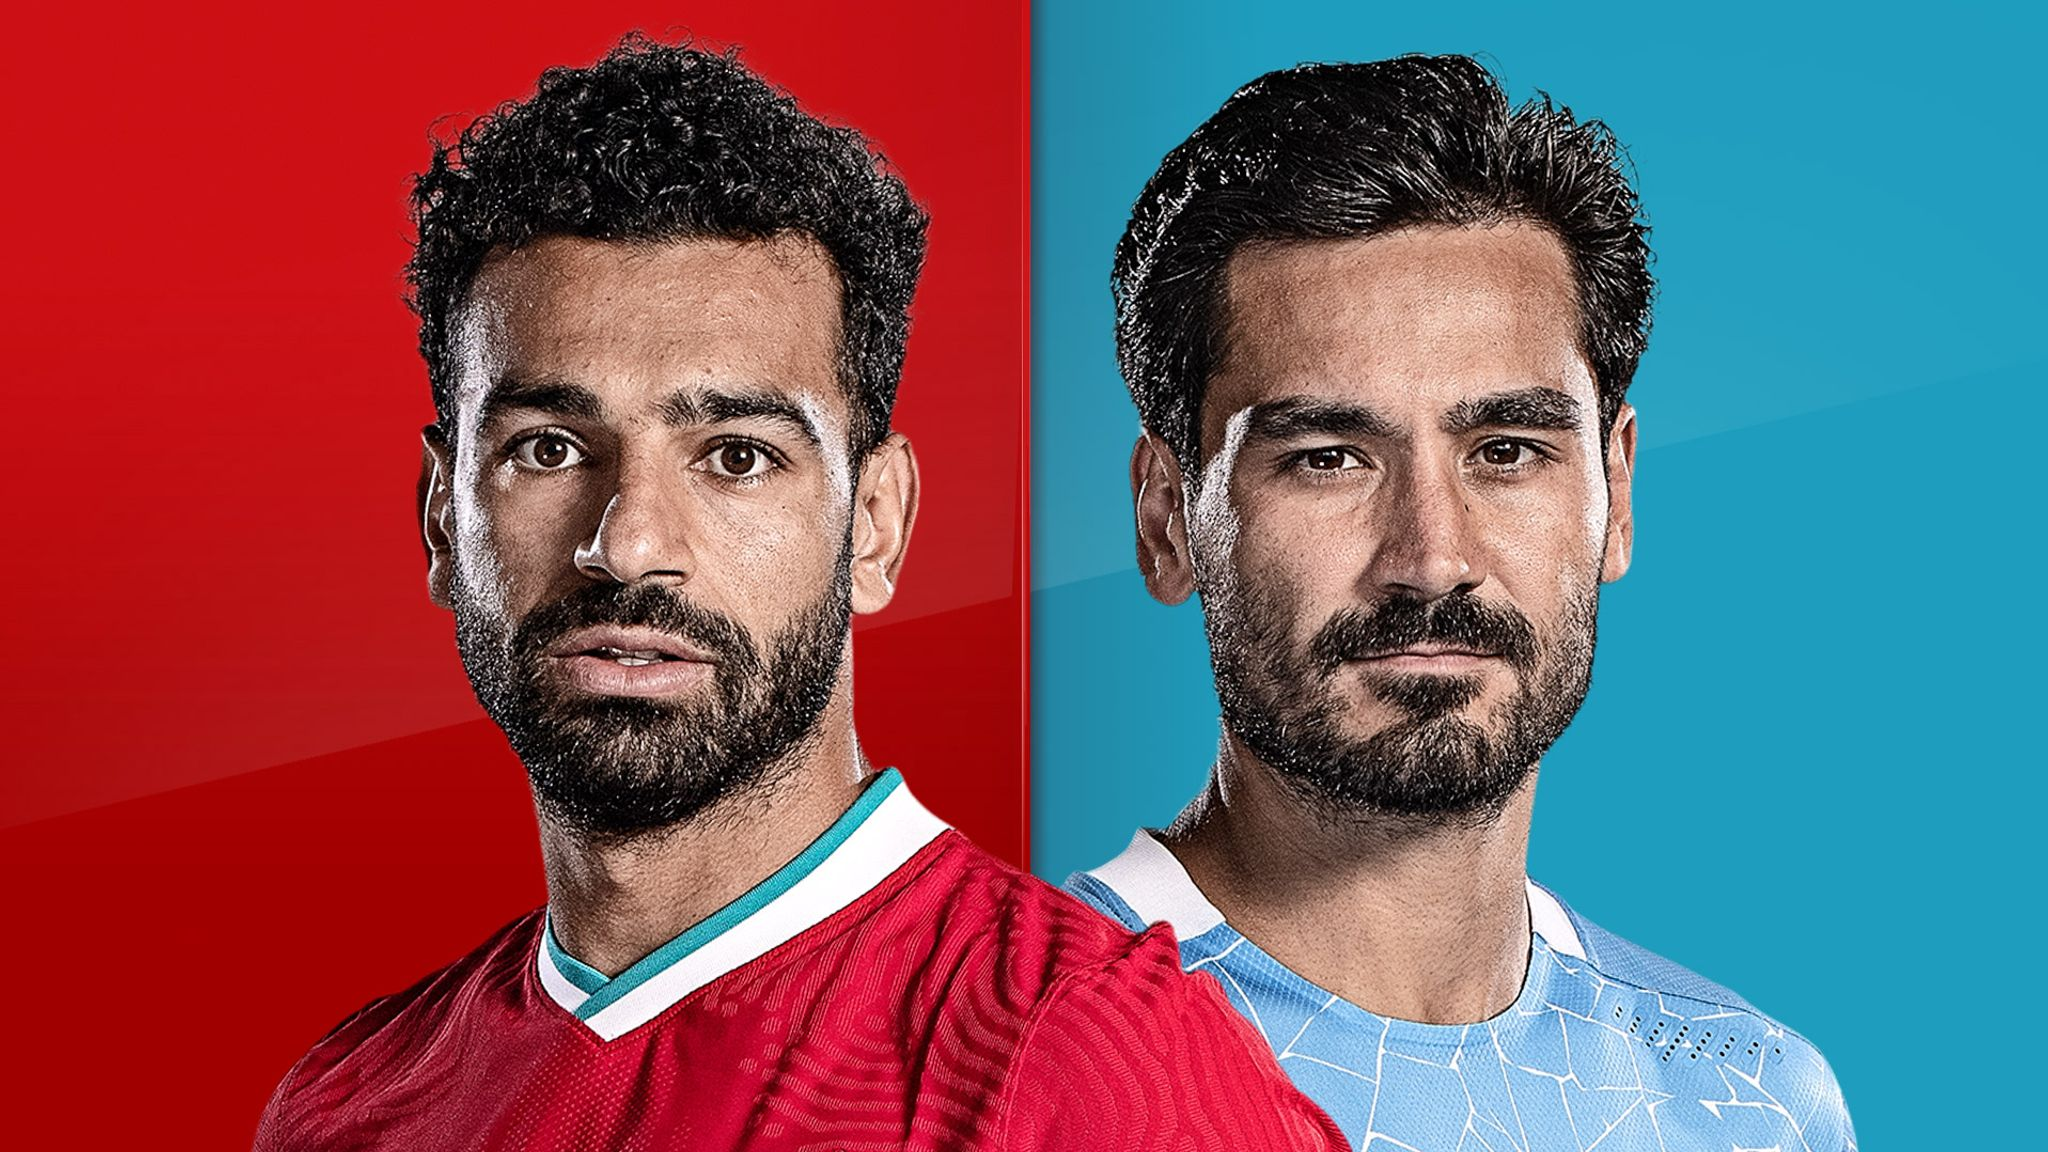 Salah (left) and Gundogan are the most awaited players of Liverpool and Man City in the competition in round 22 of the Premier League today 7/2.